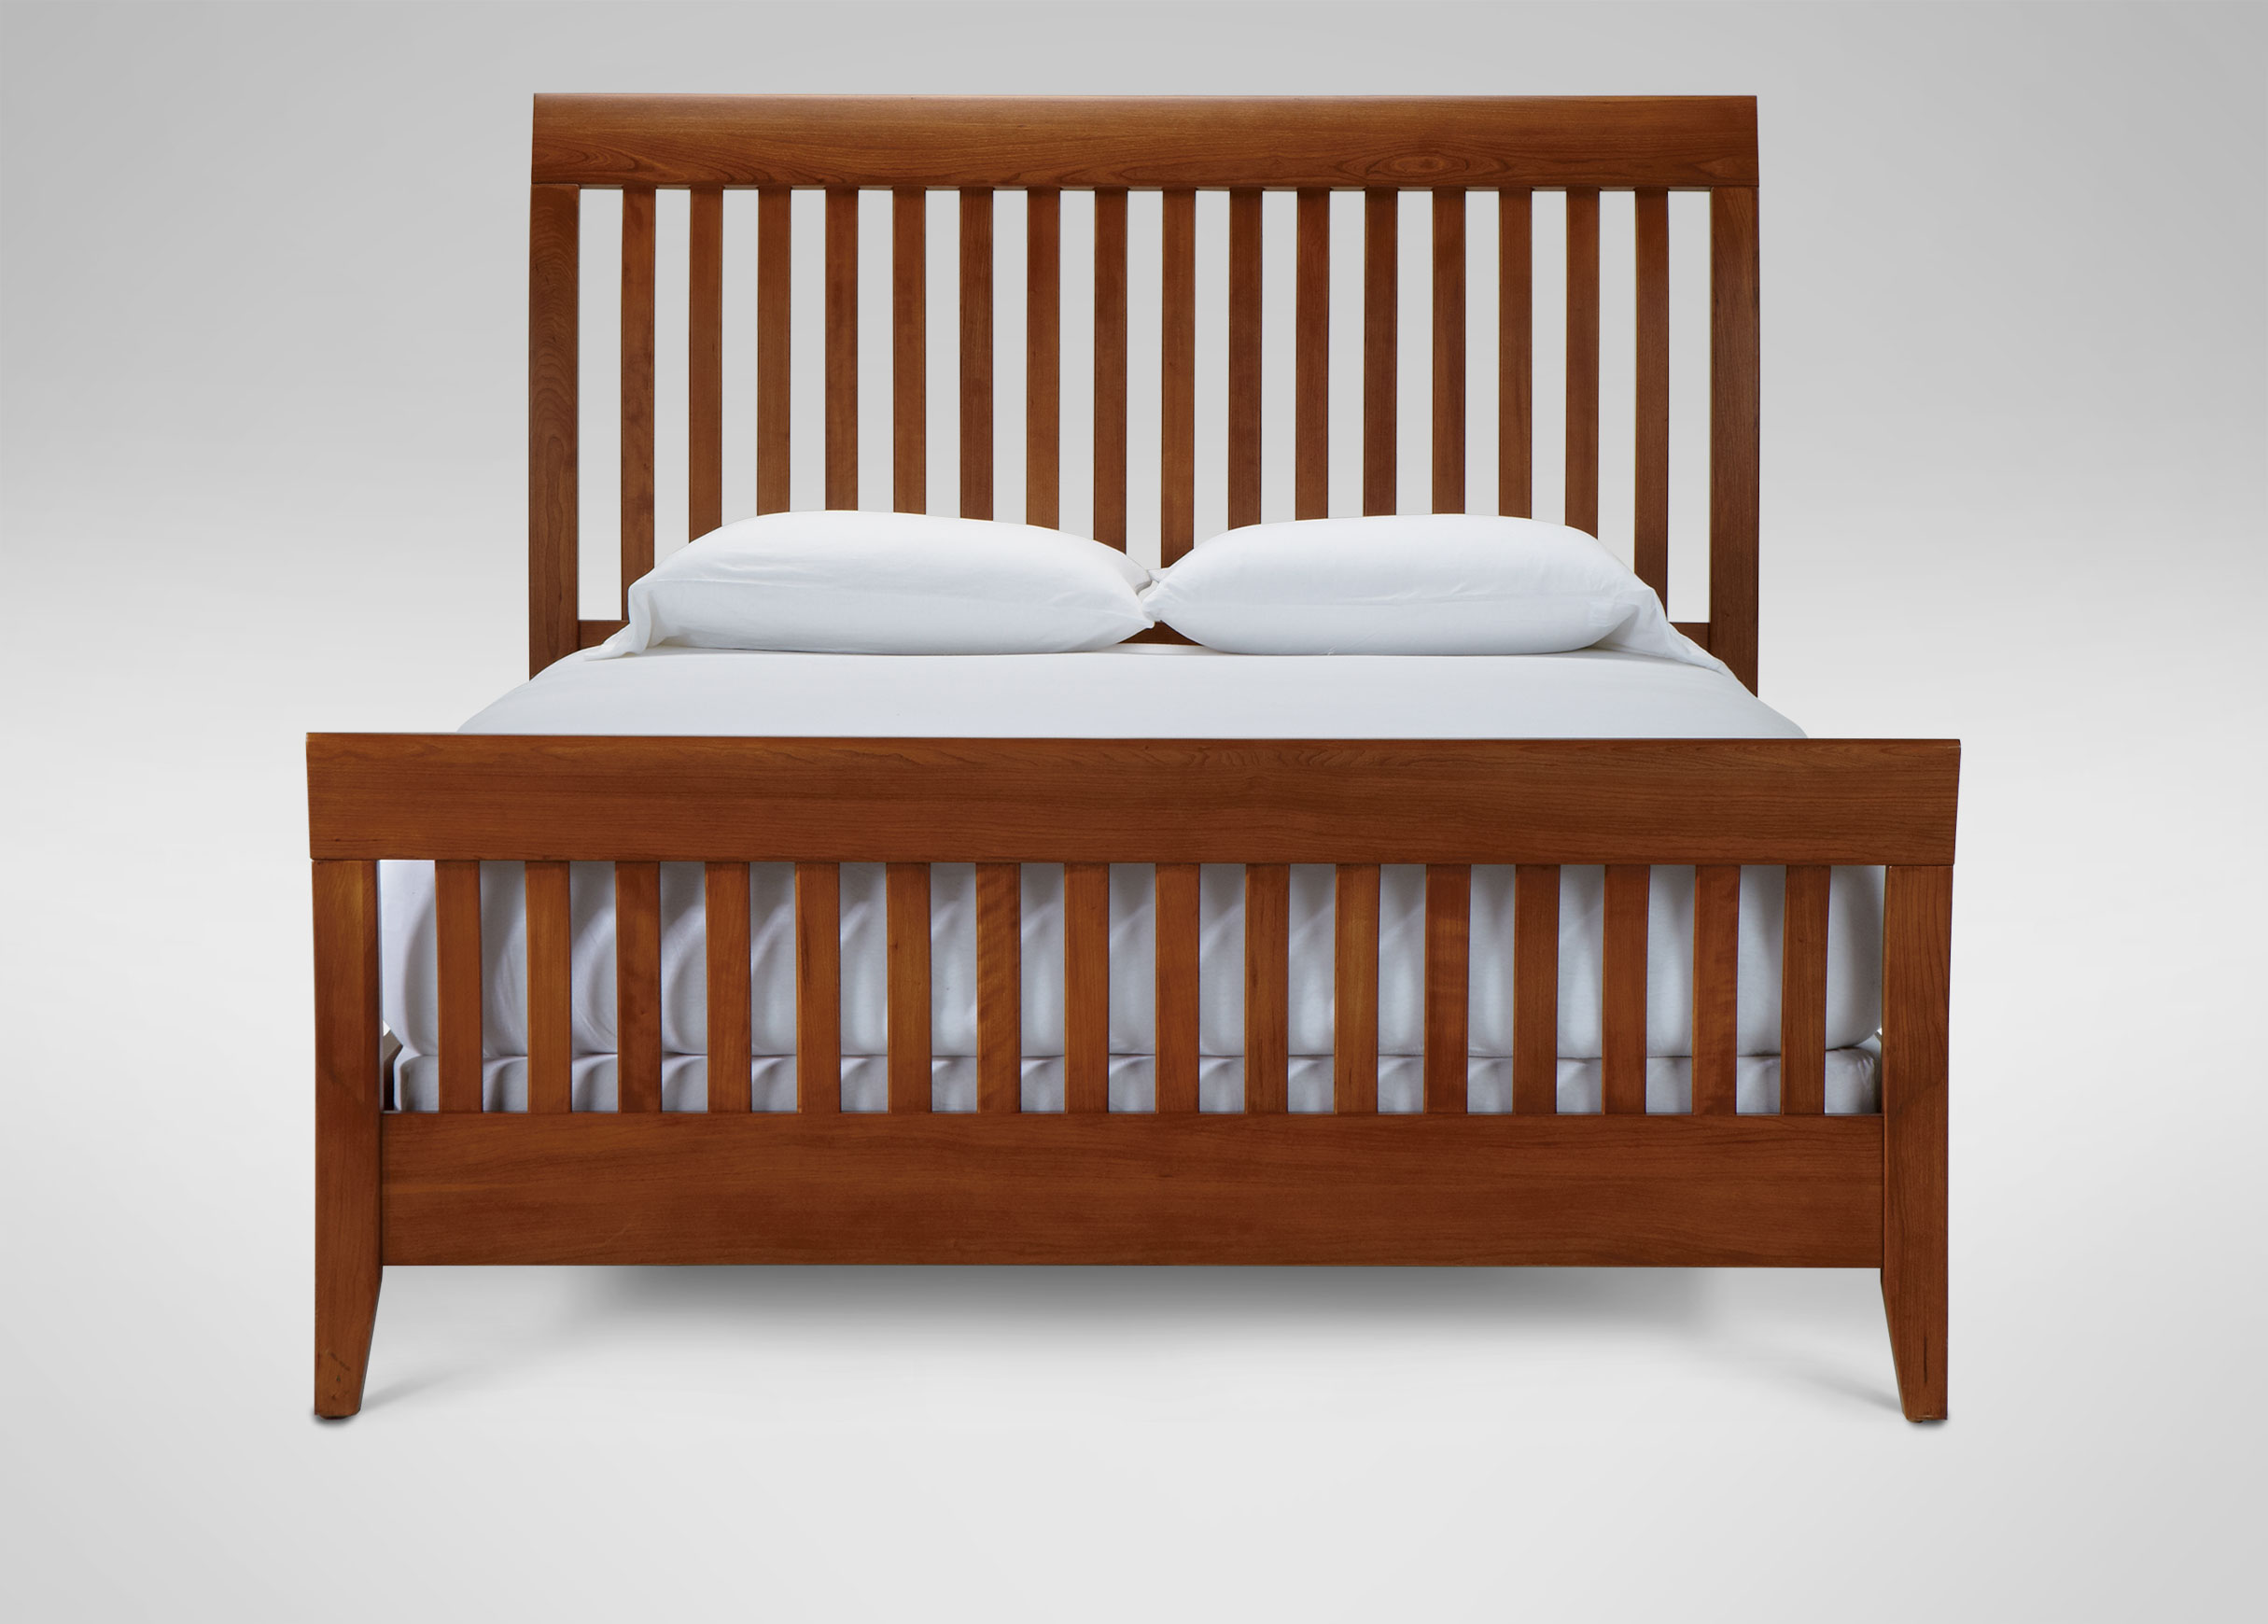 Teagan sleigh bed beds for In bed pics